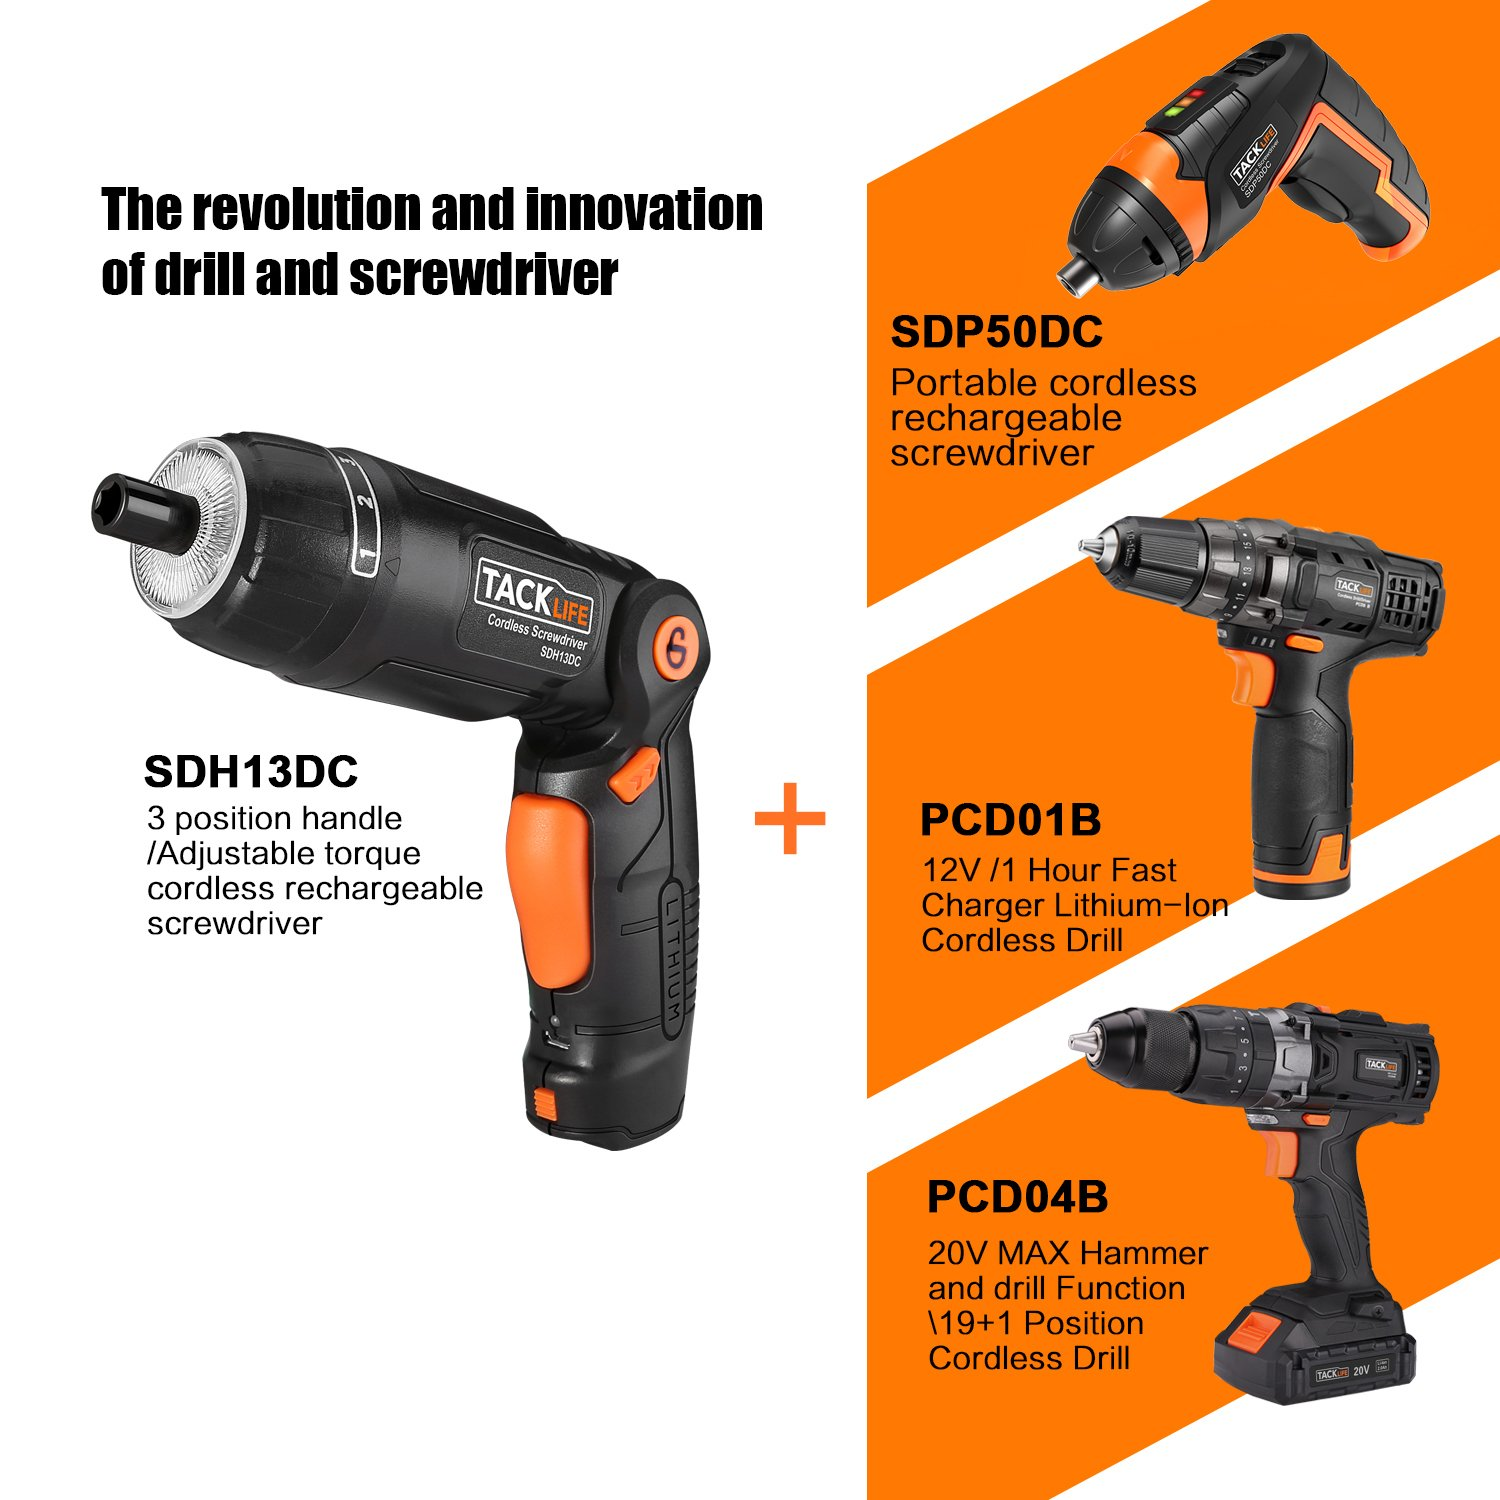 Tacklife SDH13DC Cordless Screwdriver 3.6-Volt 2000mAh MAX Torque 4N.m - 3-Position Rechargeable - 31 Screwdriver Bits in Case, 4 LED Light, Flashlight, USB Charging for Around House Small Jobs by TACKLIFE (Image #7)